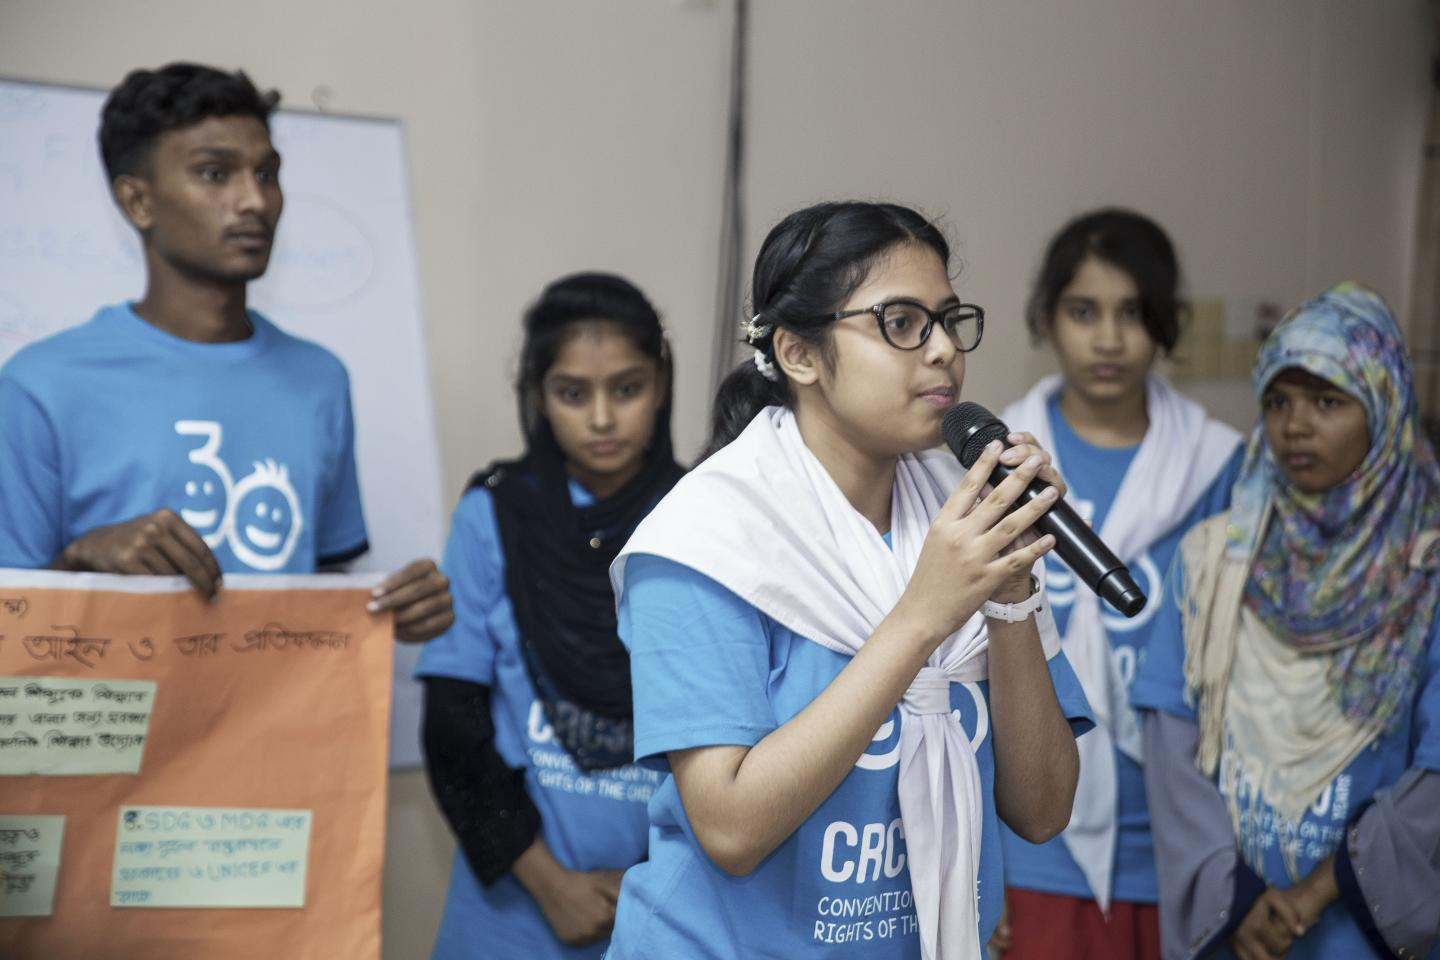 Voicing climate change concerns at CRC30 forum | UNICEF Bangladesh